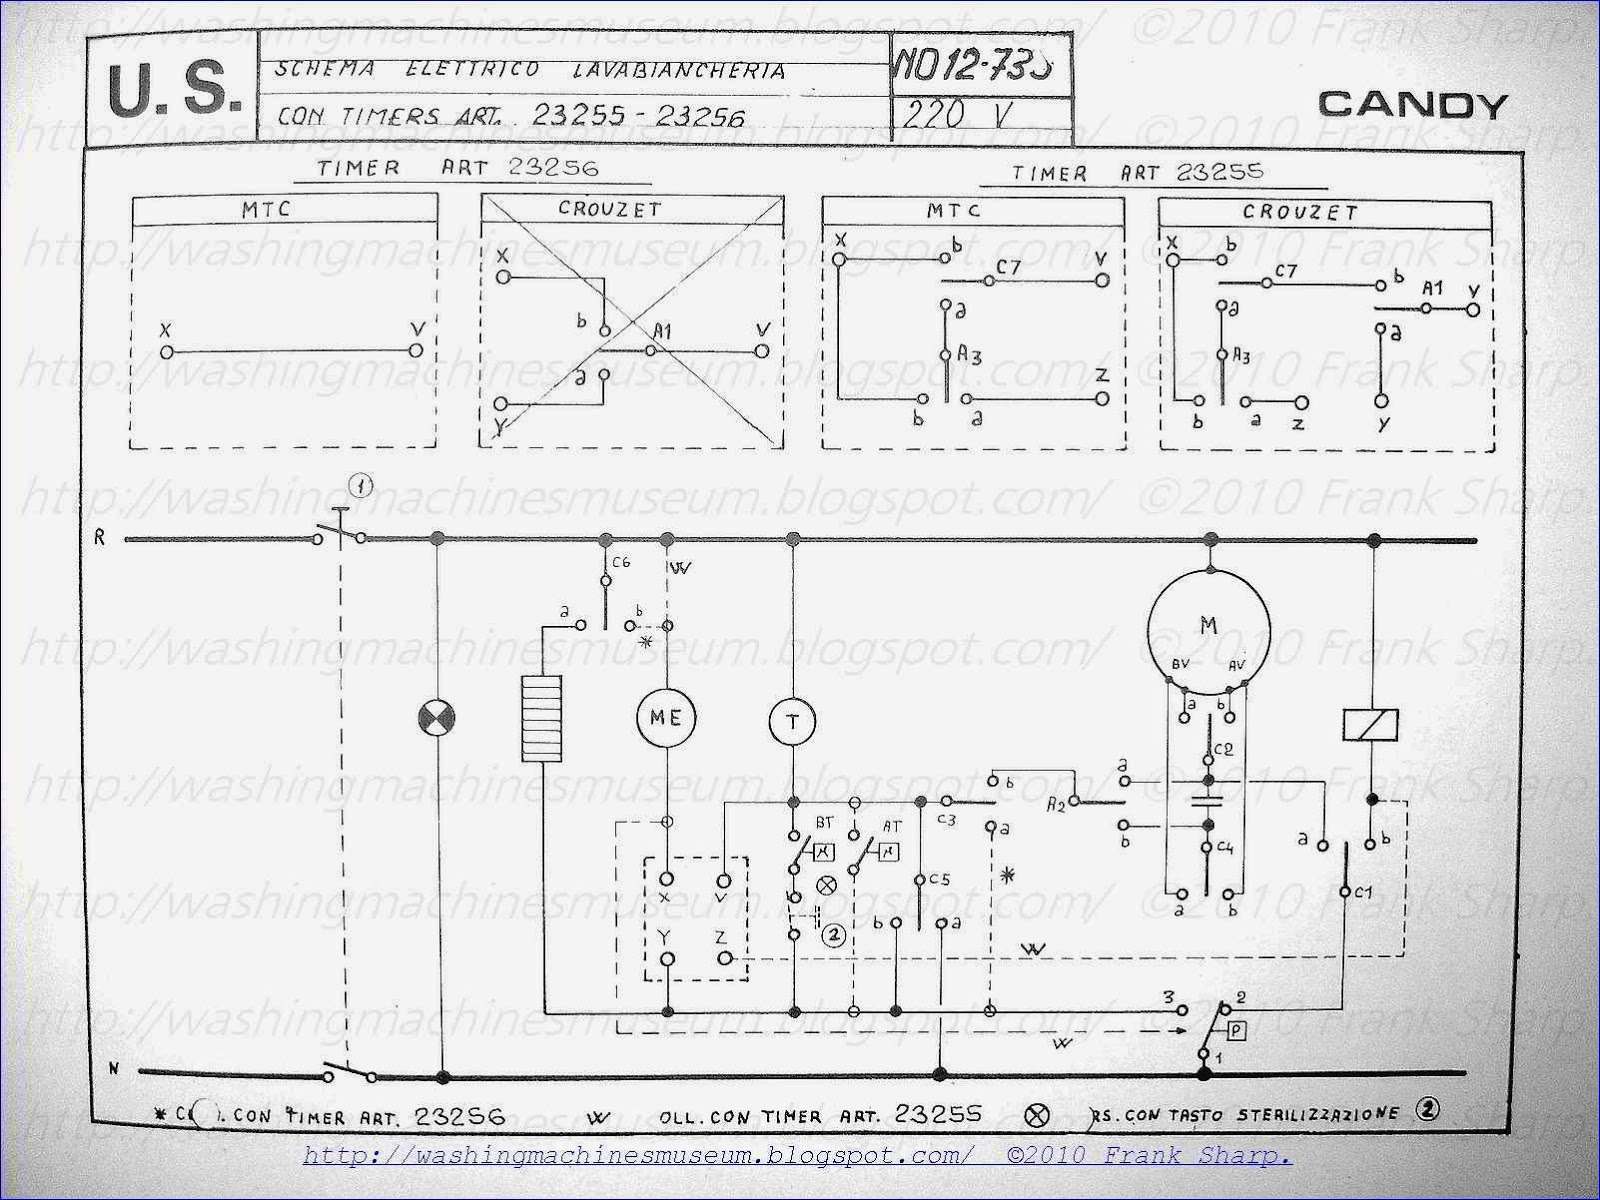 Nice kenmore washer wiring diagram images the best electrical wiring diagram ge washer g153 wiring diagram cheapraybanclubmaster Gallery